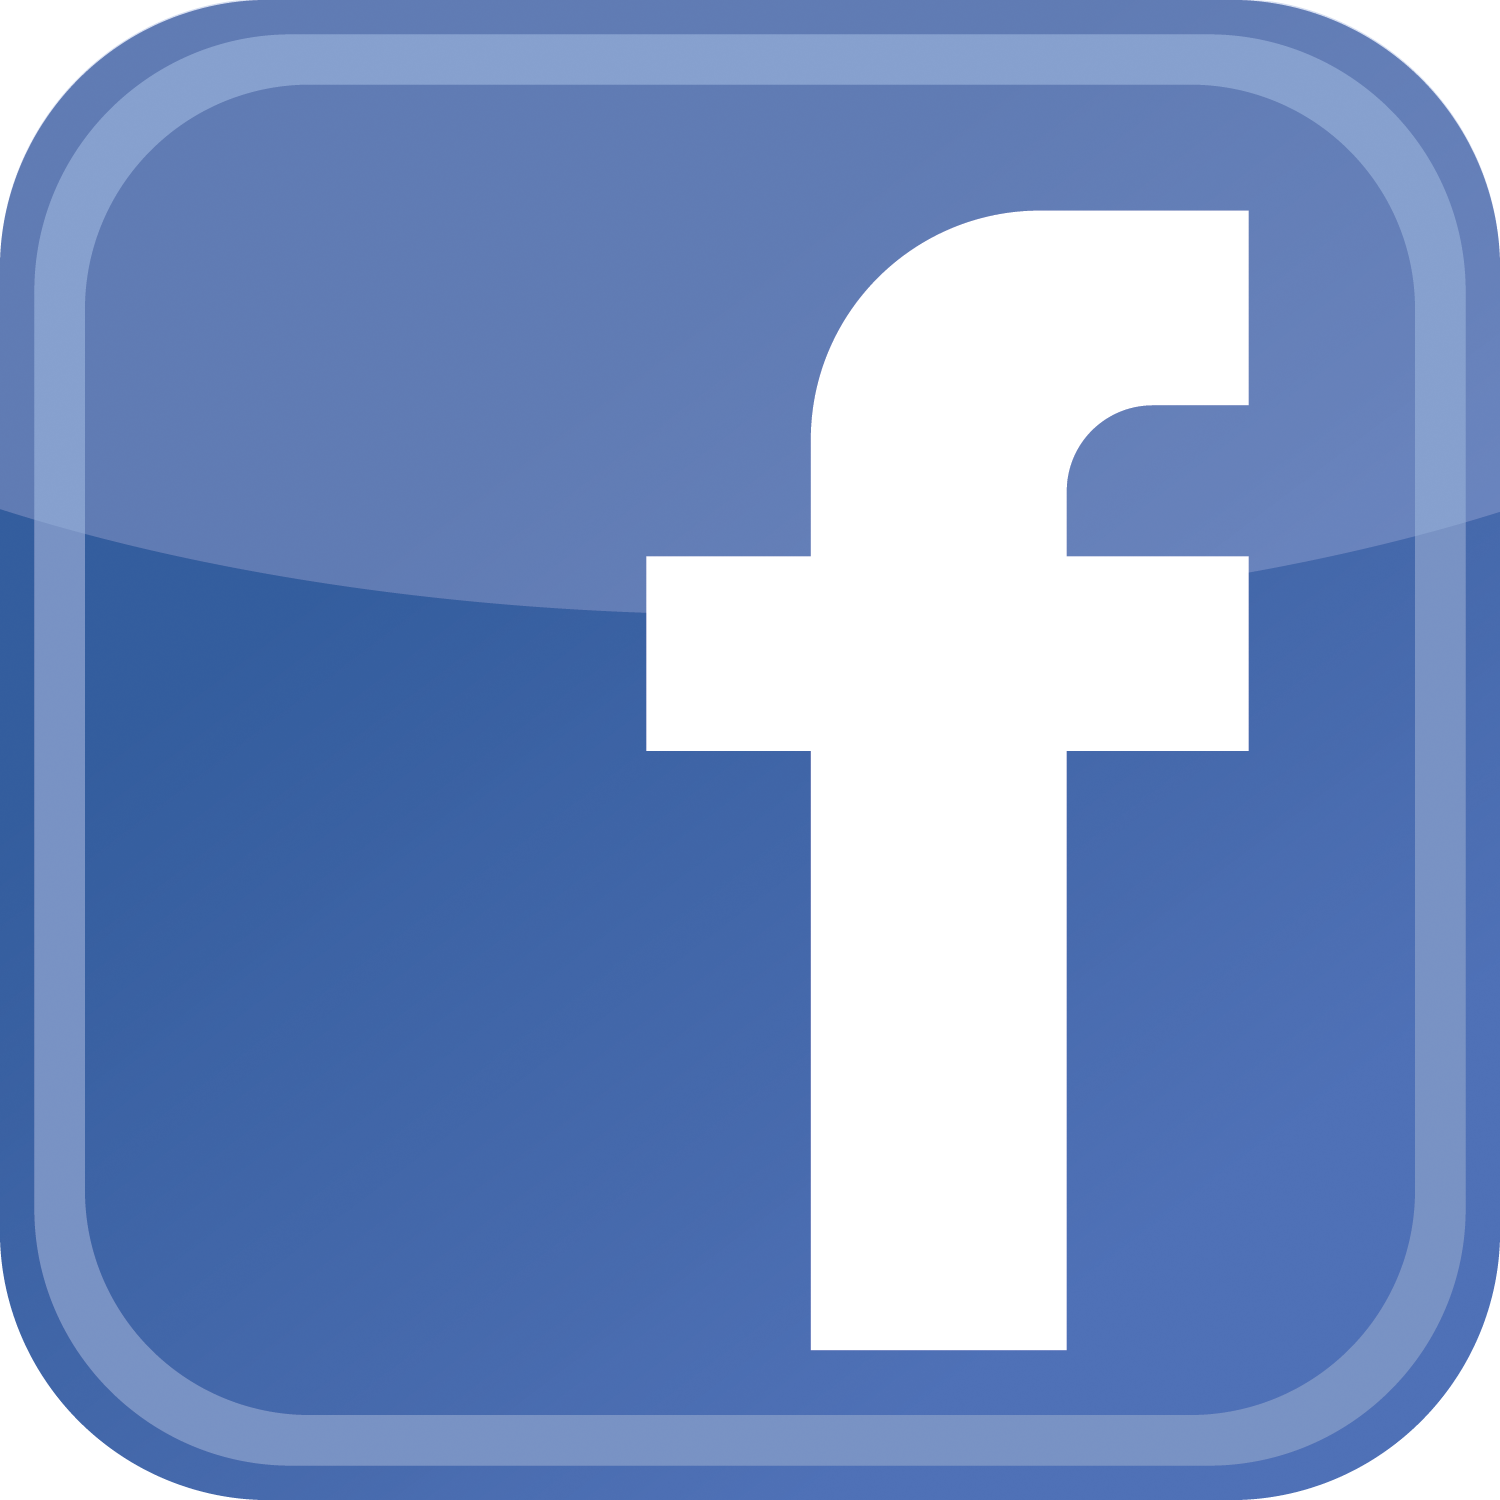 http://www.brueck-auf.de/tl_files/brueck-auf_files/images/Transparent-Facebook-Logo-Icon.png